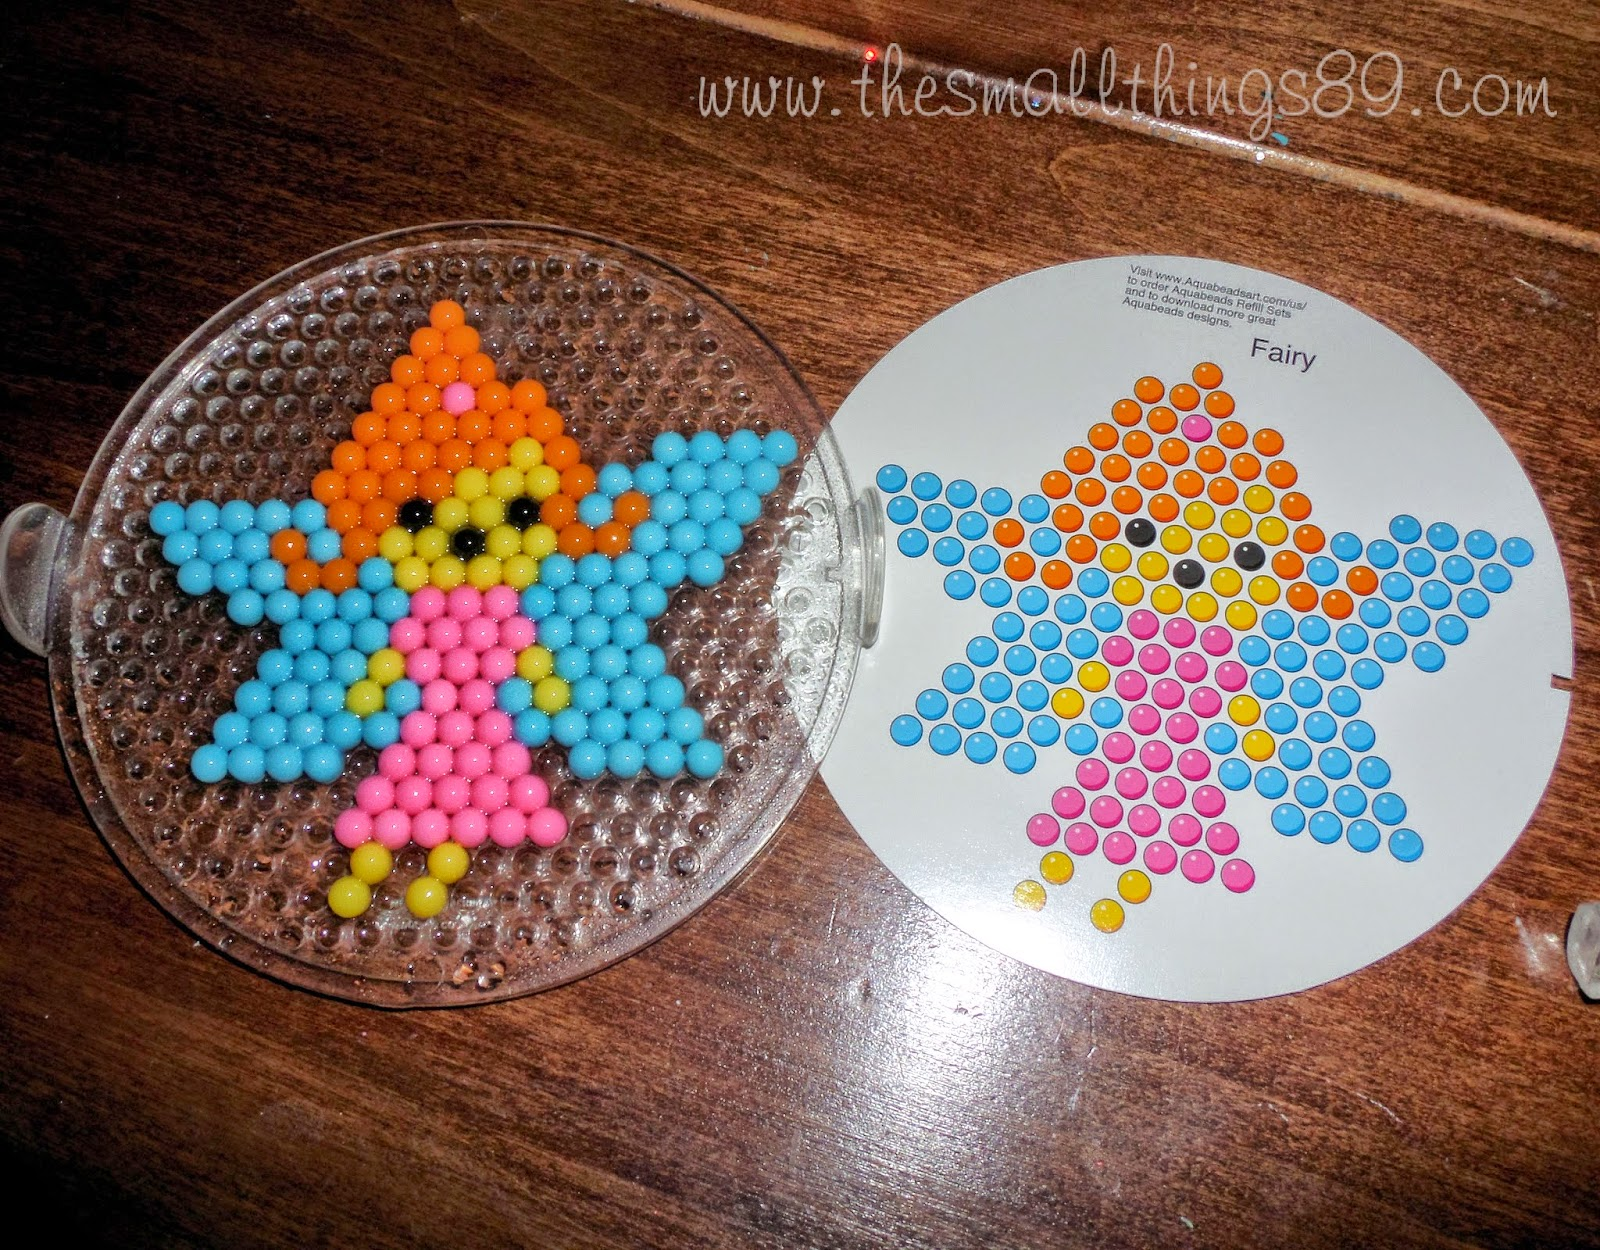 June The Small Things - Aquabeads templates